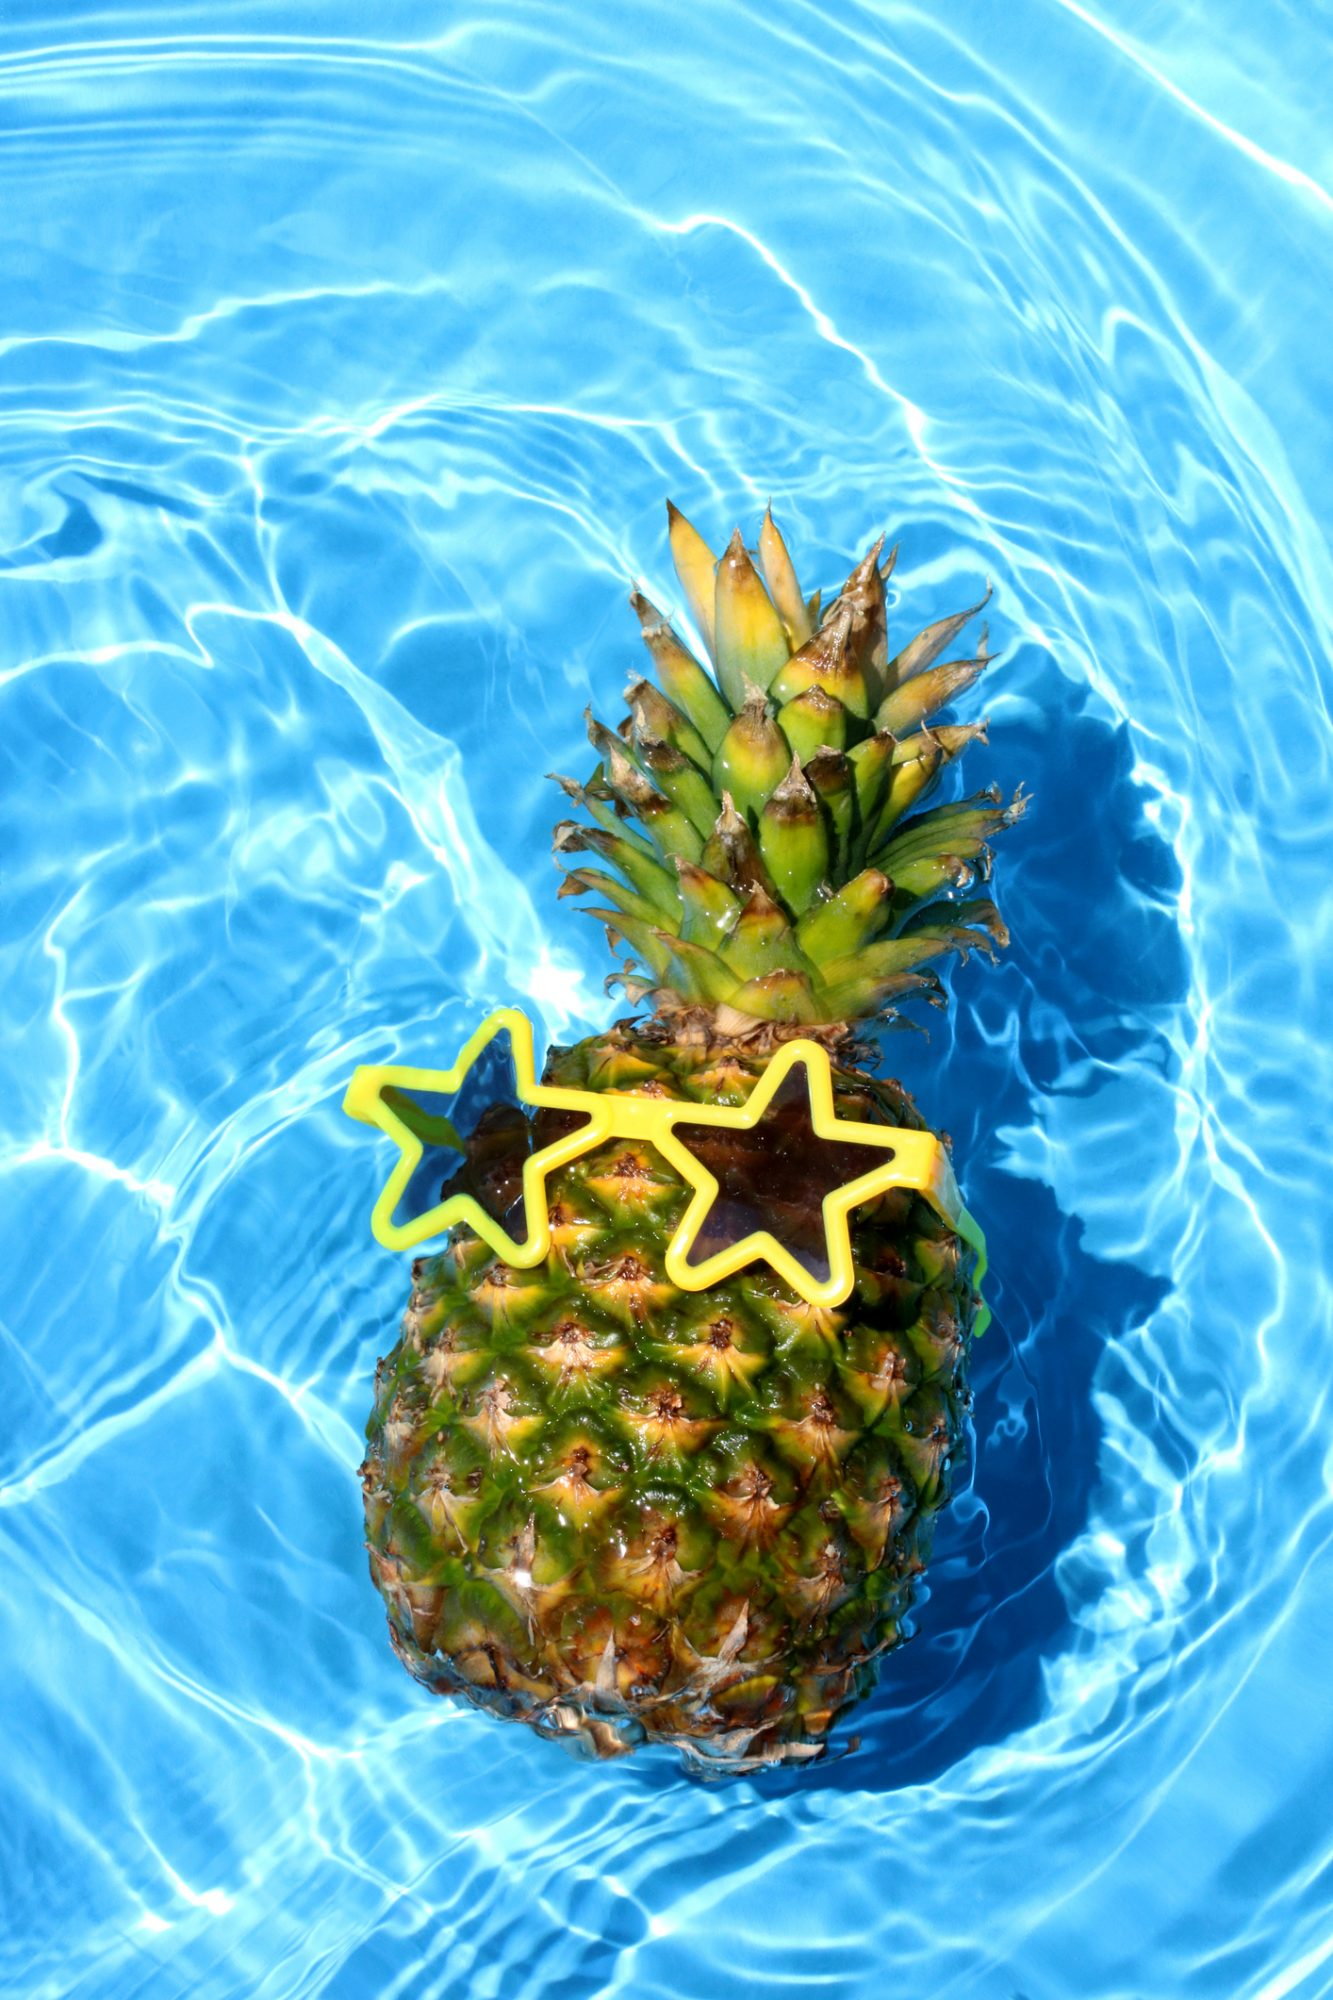 celebrity-diet-pineapple-blog0817.jpg